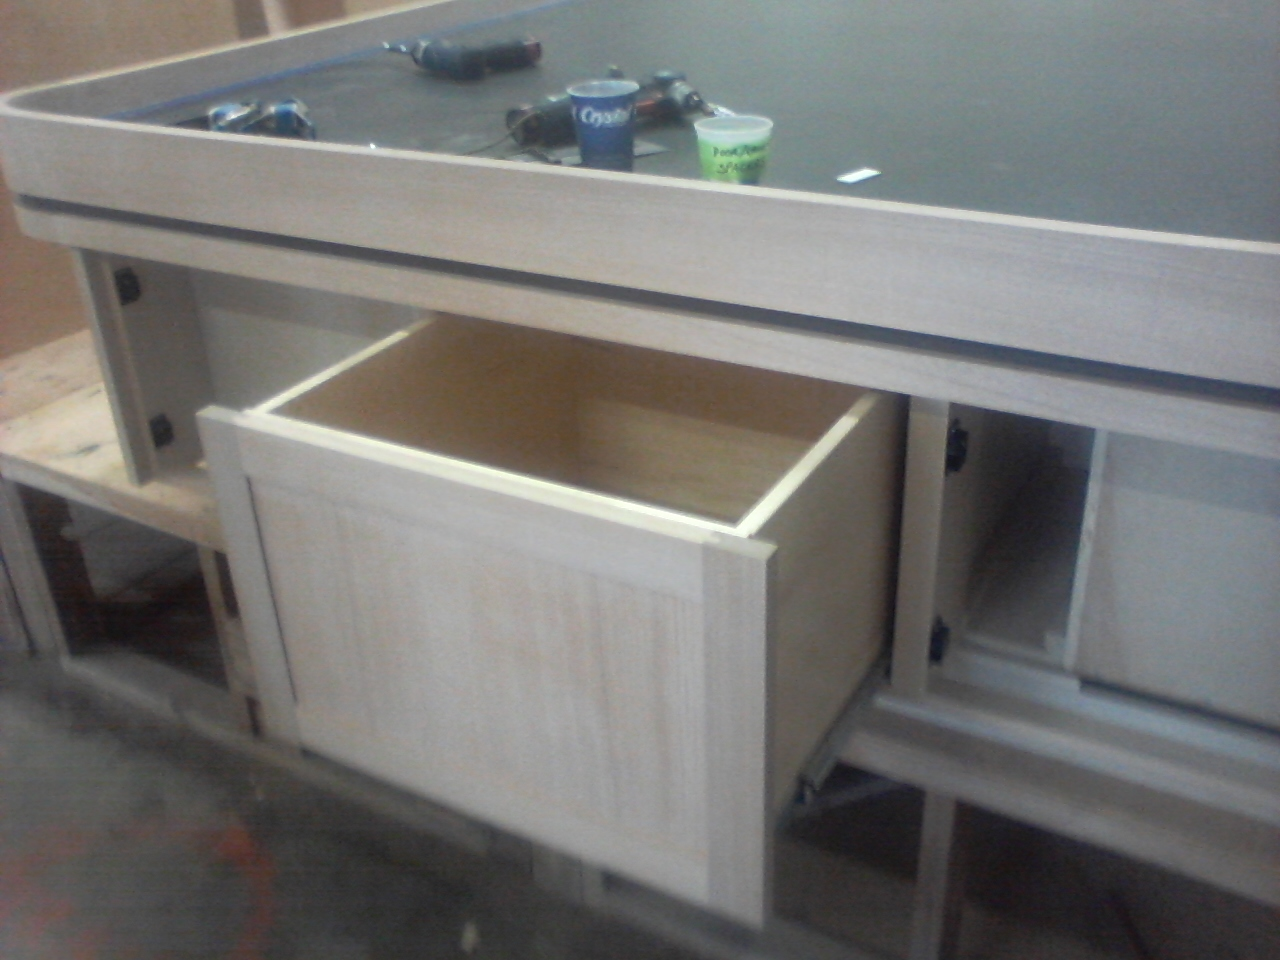 master bunk cenetr drawer On accuride slides, touch release